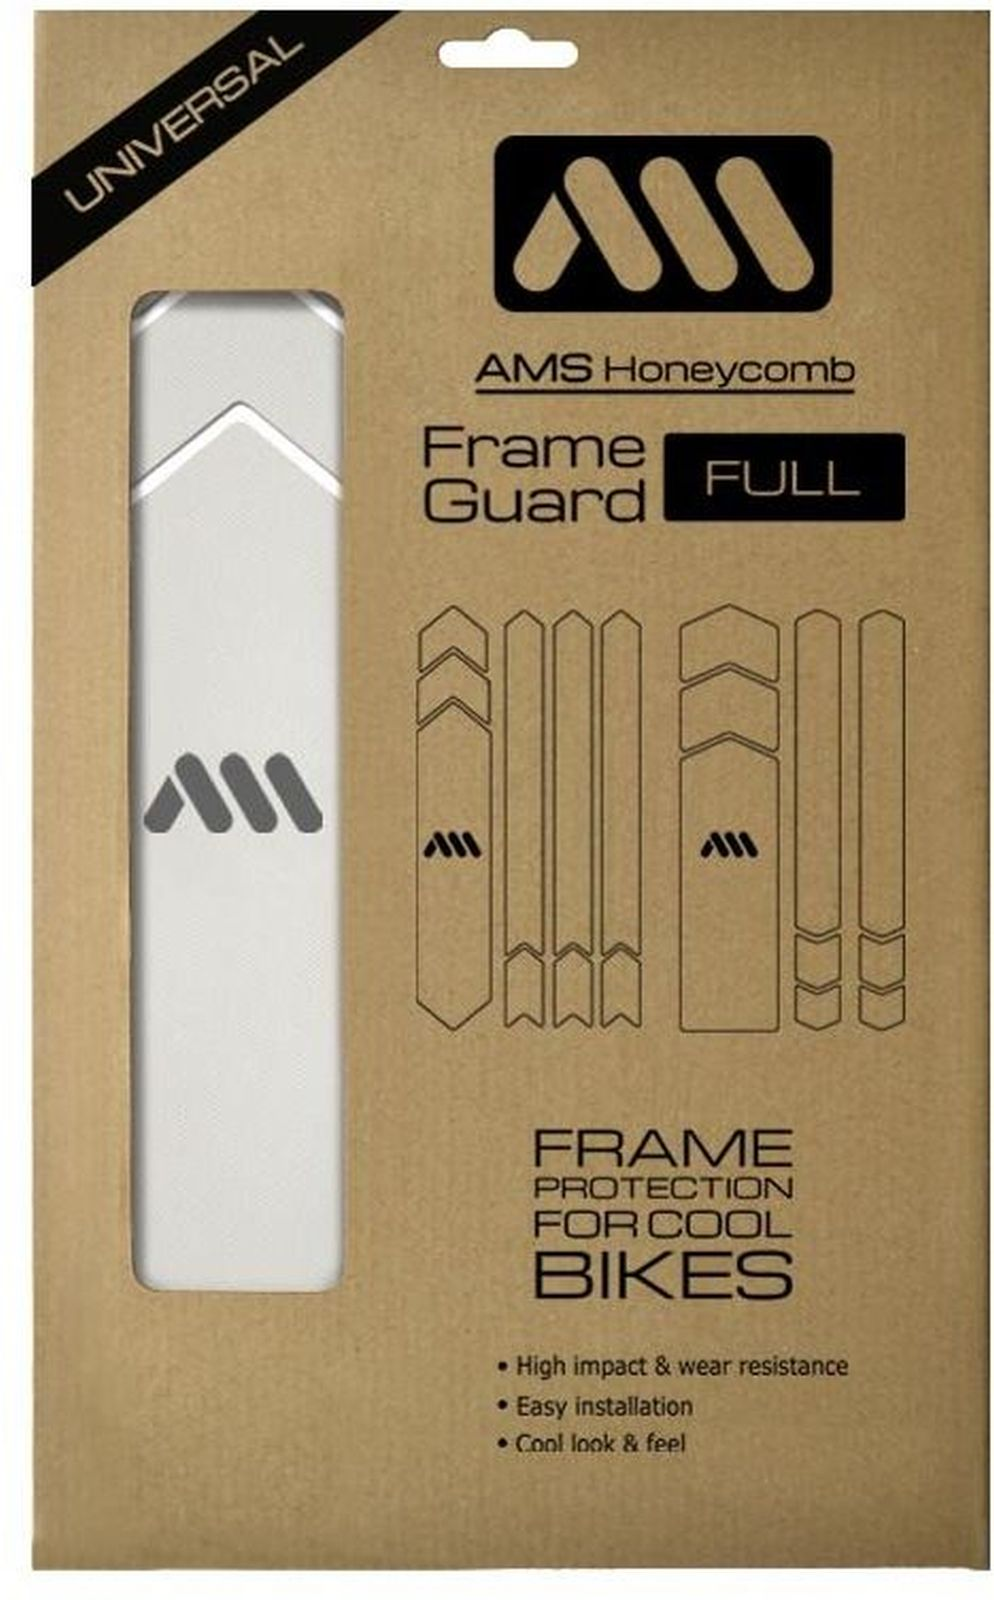 AMS Honeycomb Frame Guard Full - clear uni